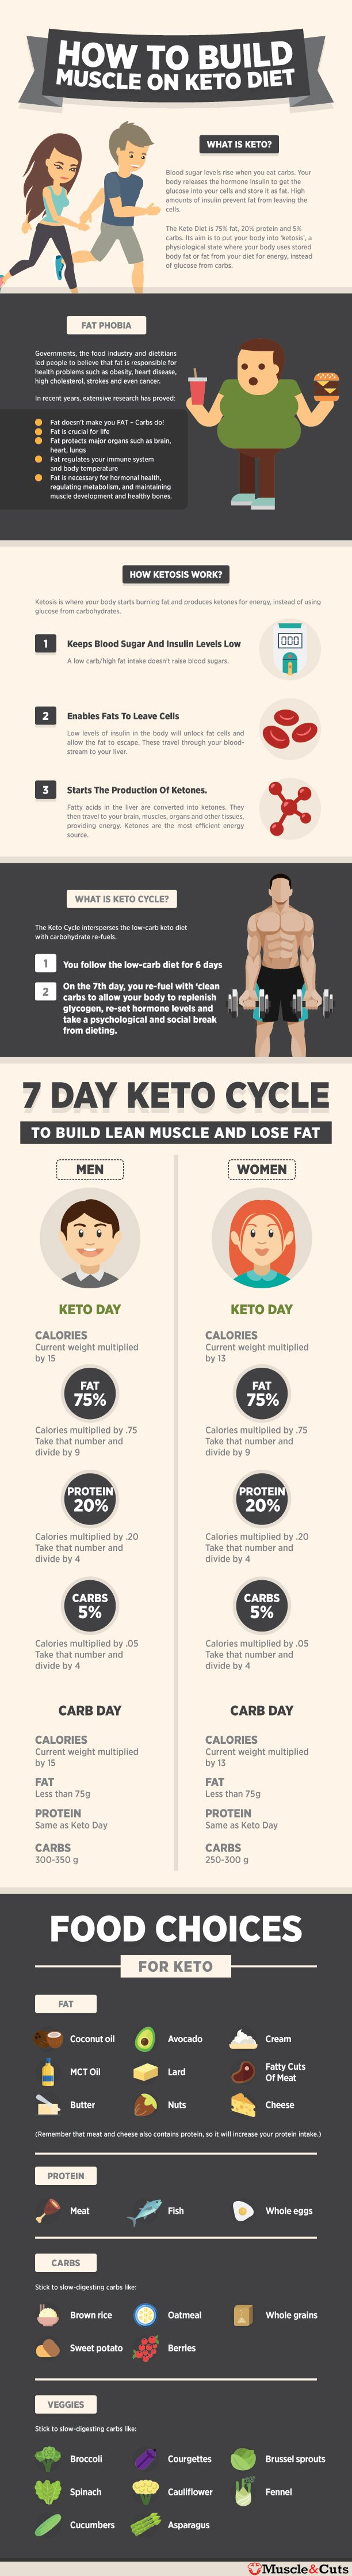 Can You Build Muscle On The Ketogenic Diet?